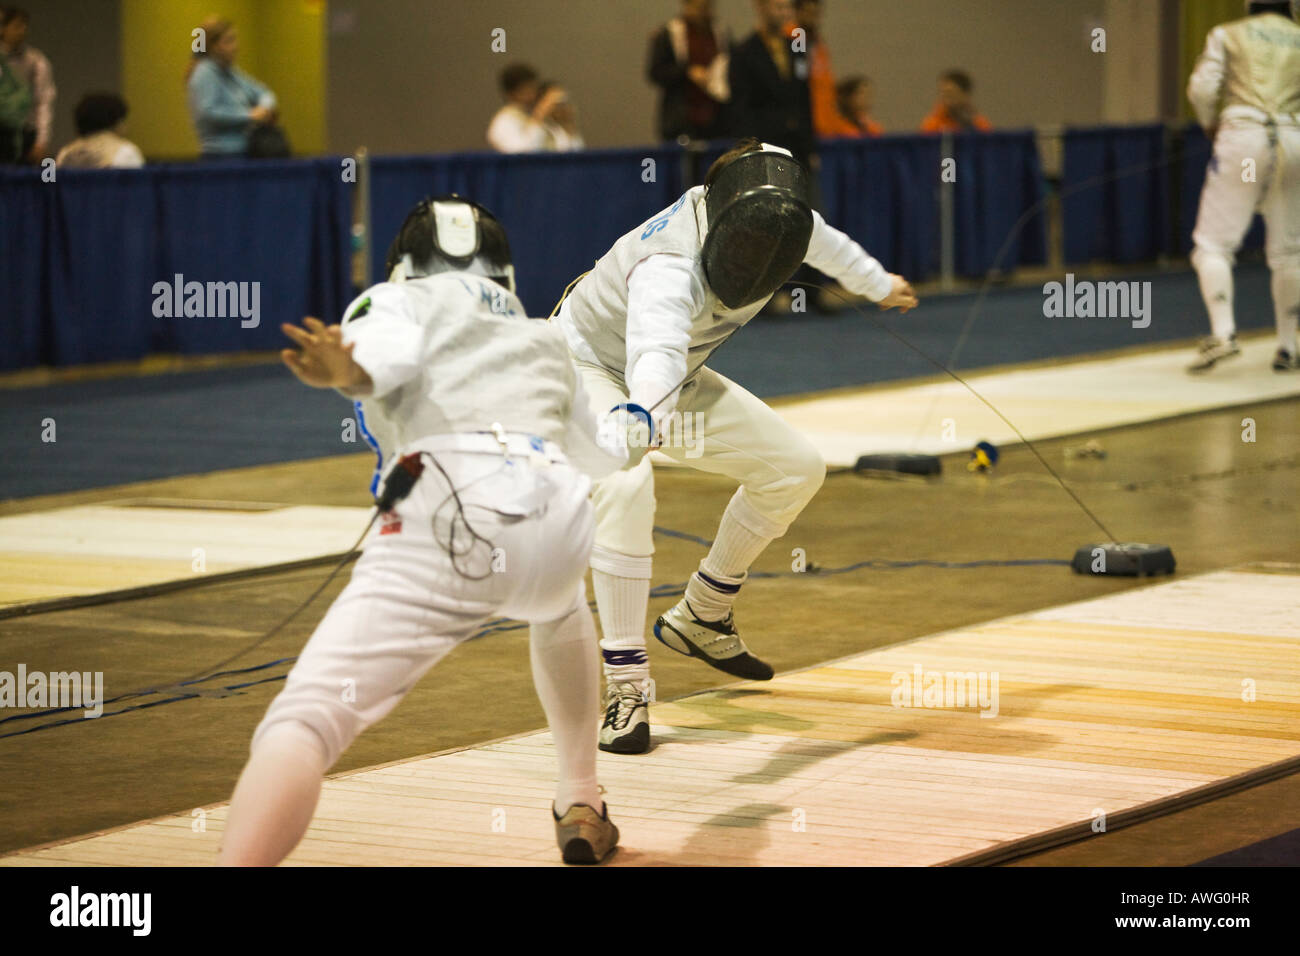 SPORTS Fencing competition bout male foil competitors on strip during match touch on lame jacket - Stock Image